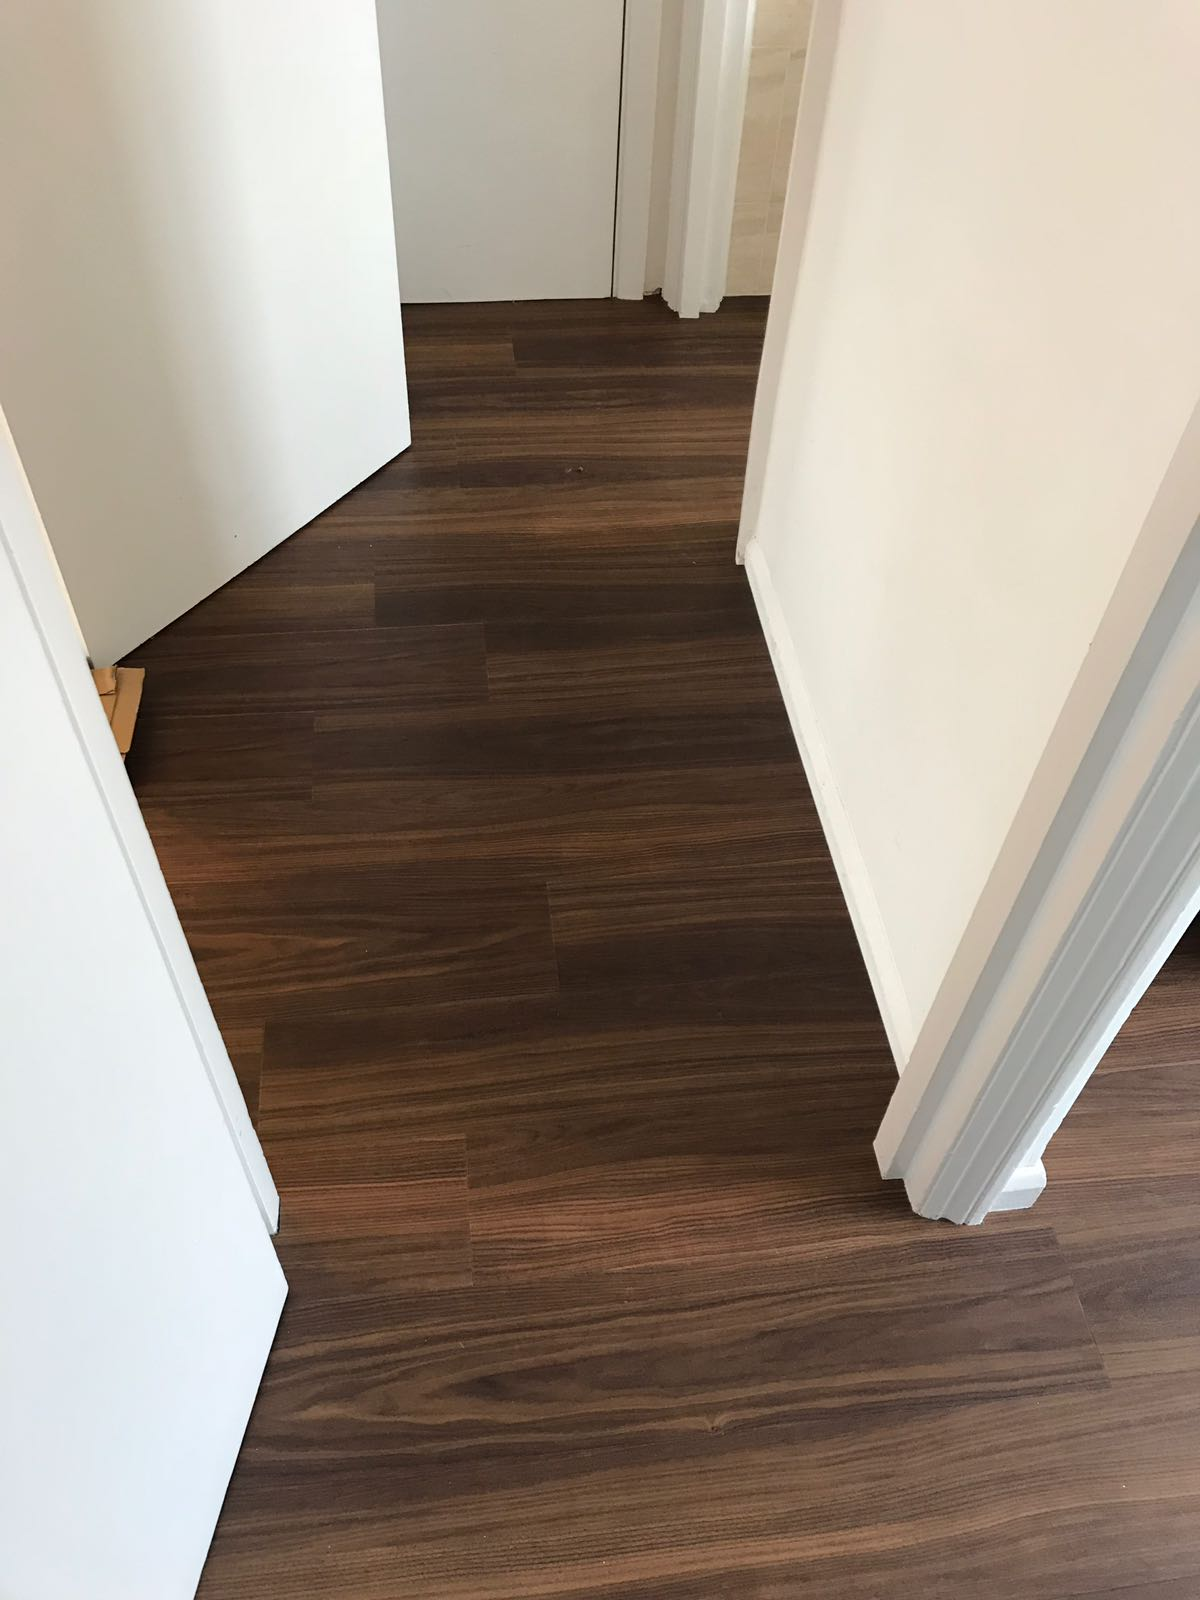 2018-04-24_Amtico Flooring Installed In Chelsea Residence (4)